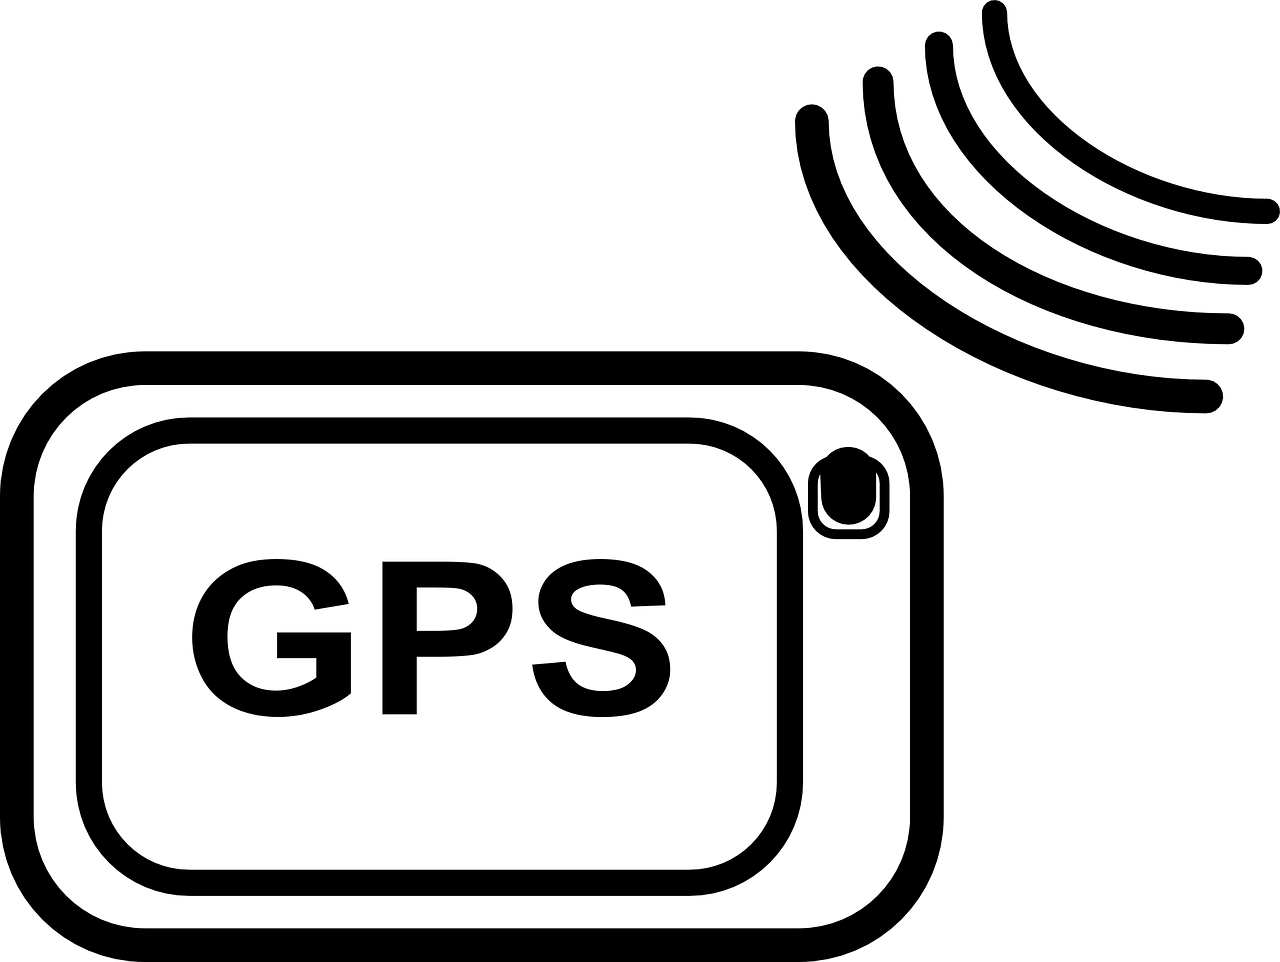 jpg transparent stock The pros and cons. Gps clipart gps tracker